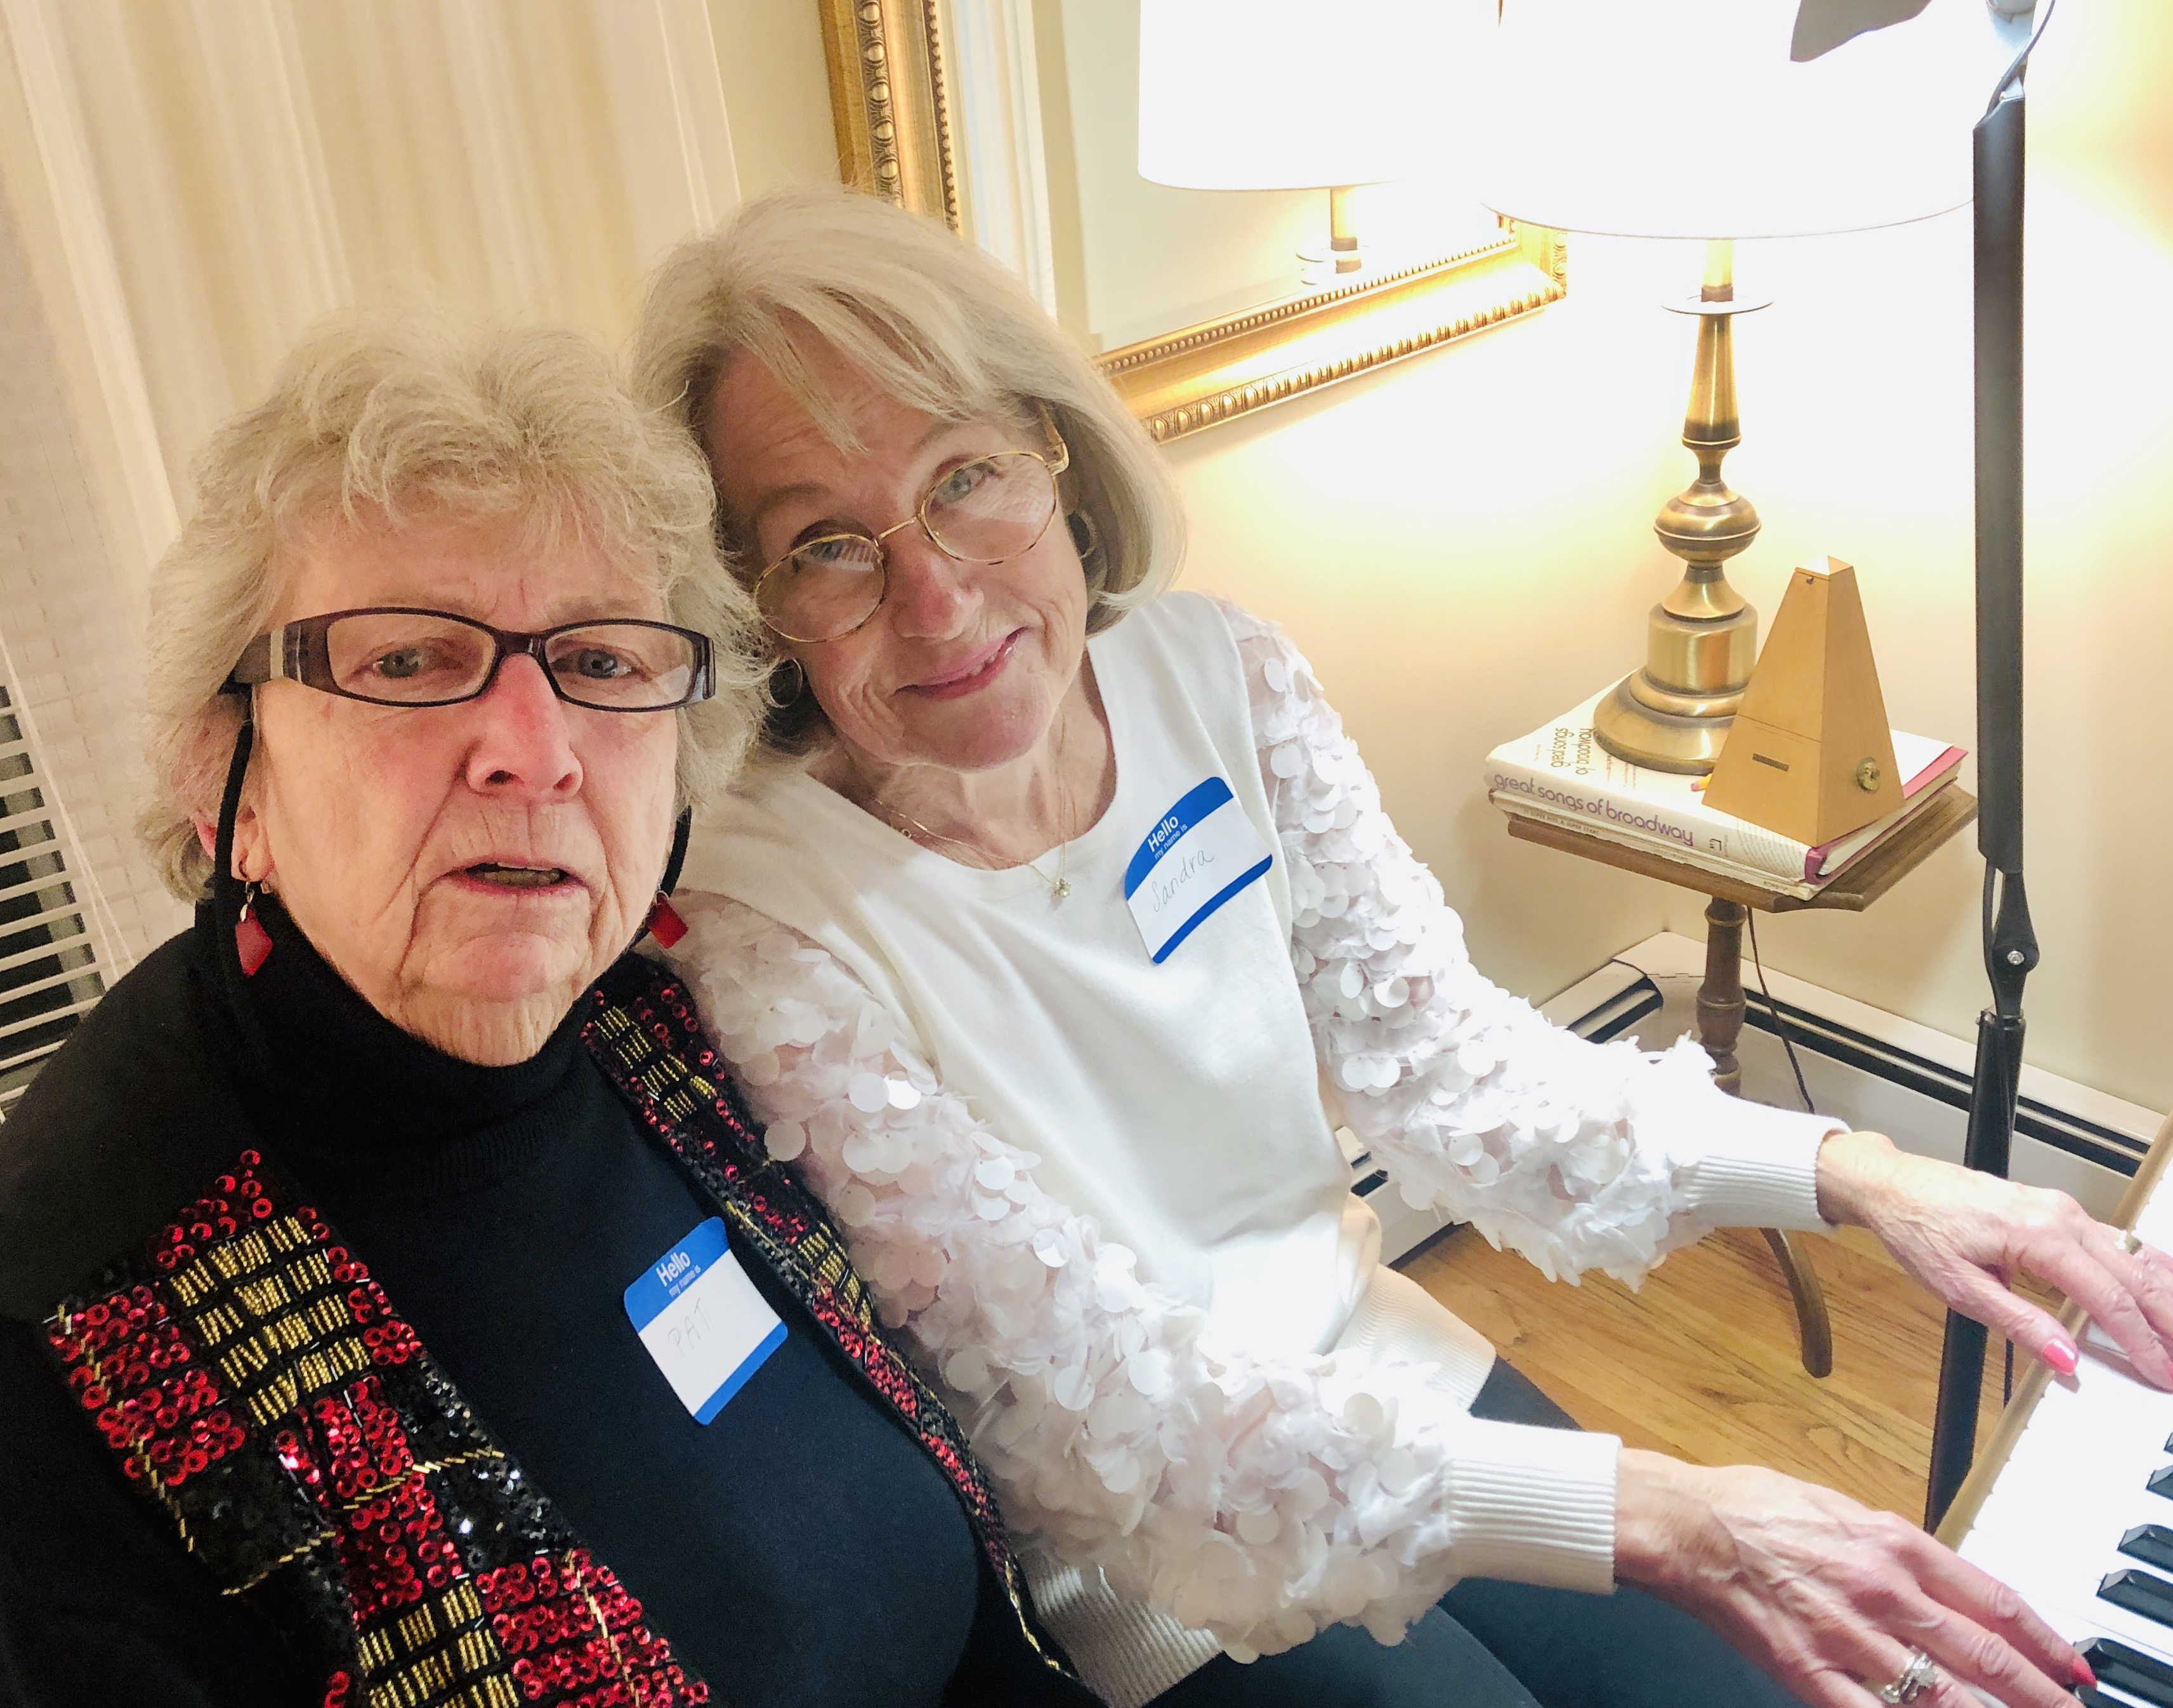 piano party dec 2019 pat & sandra.jpeg